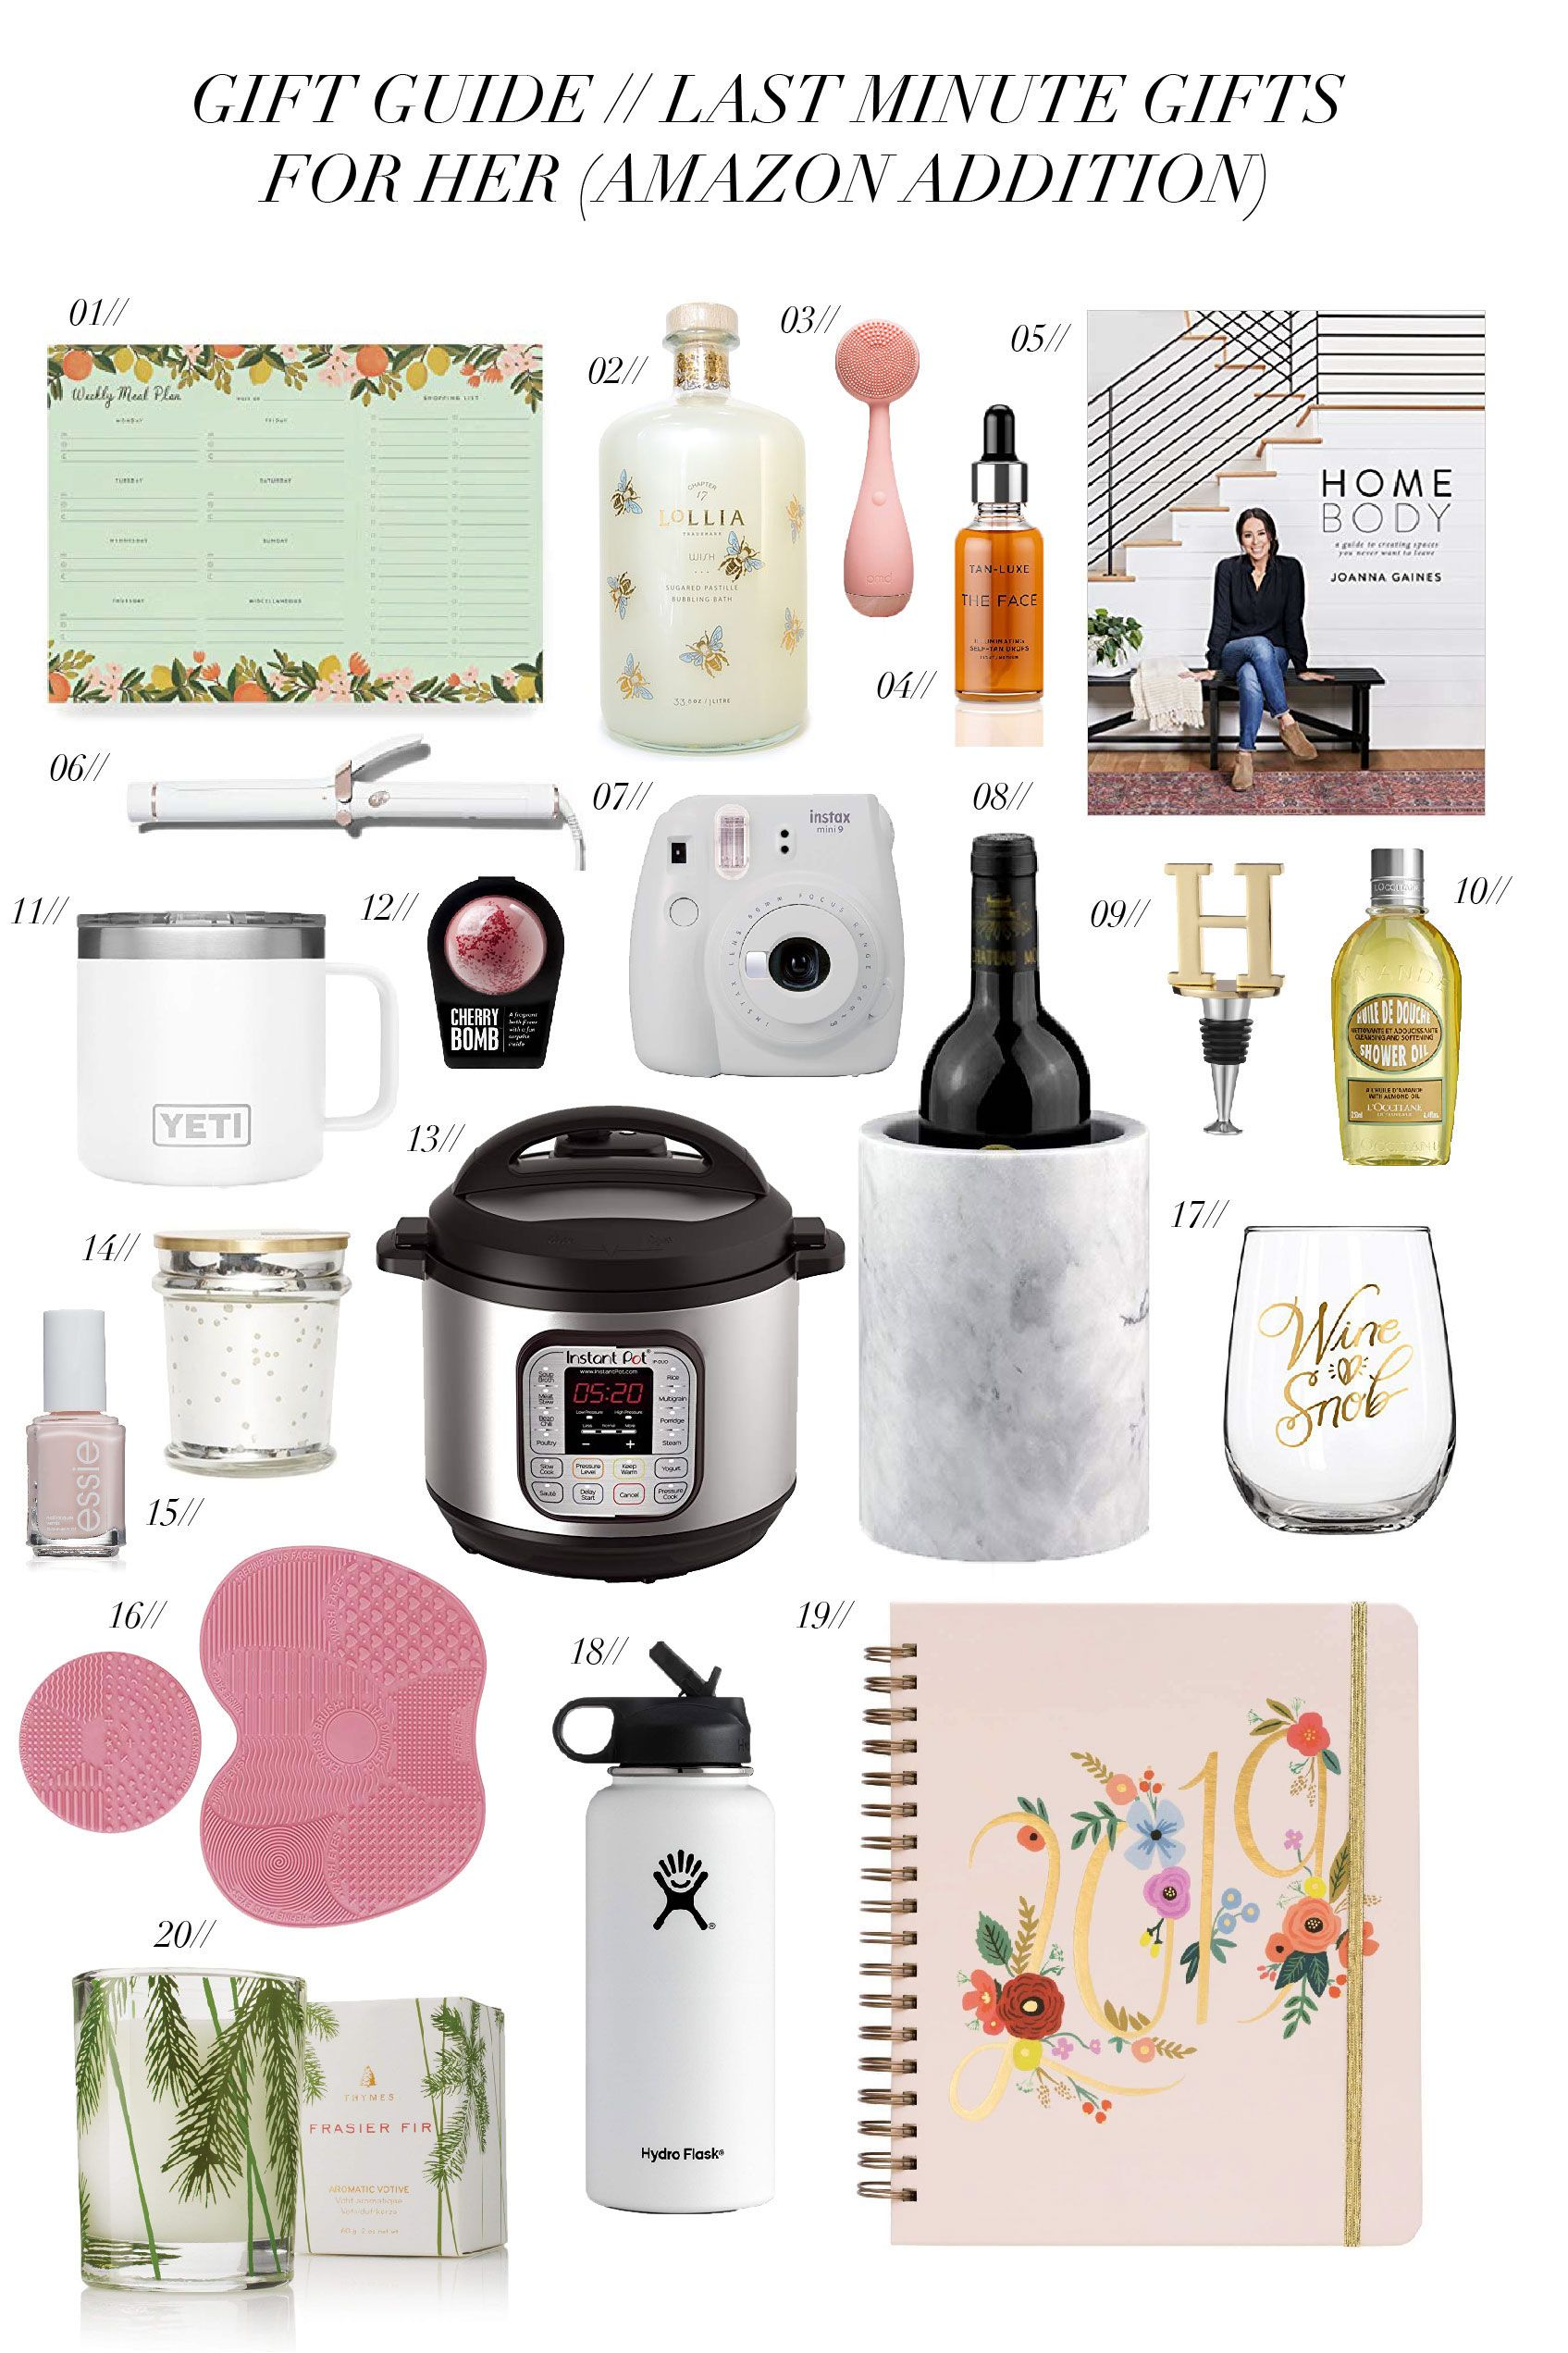 Gift guide last minute gifts from amazon gift guide